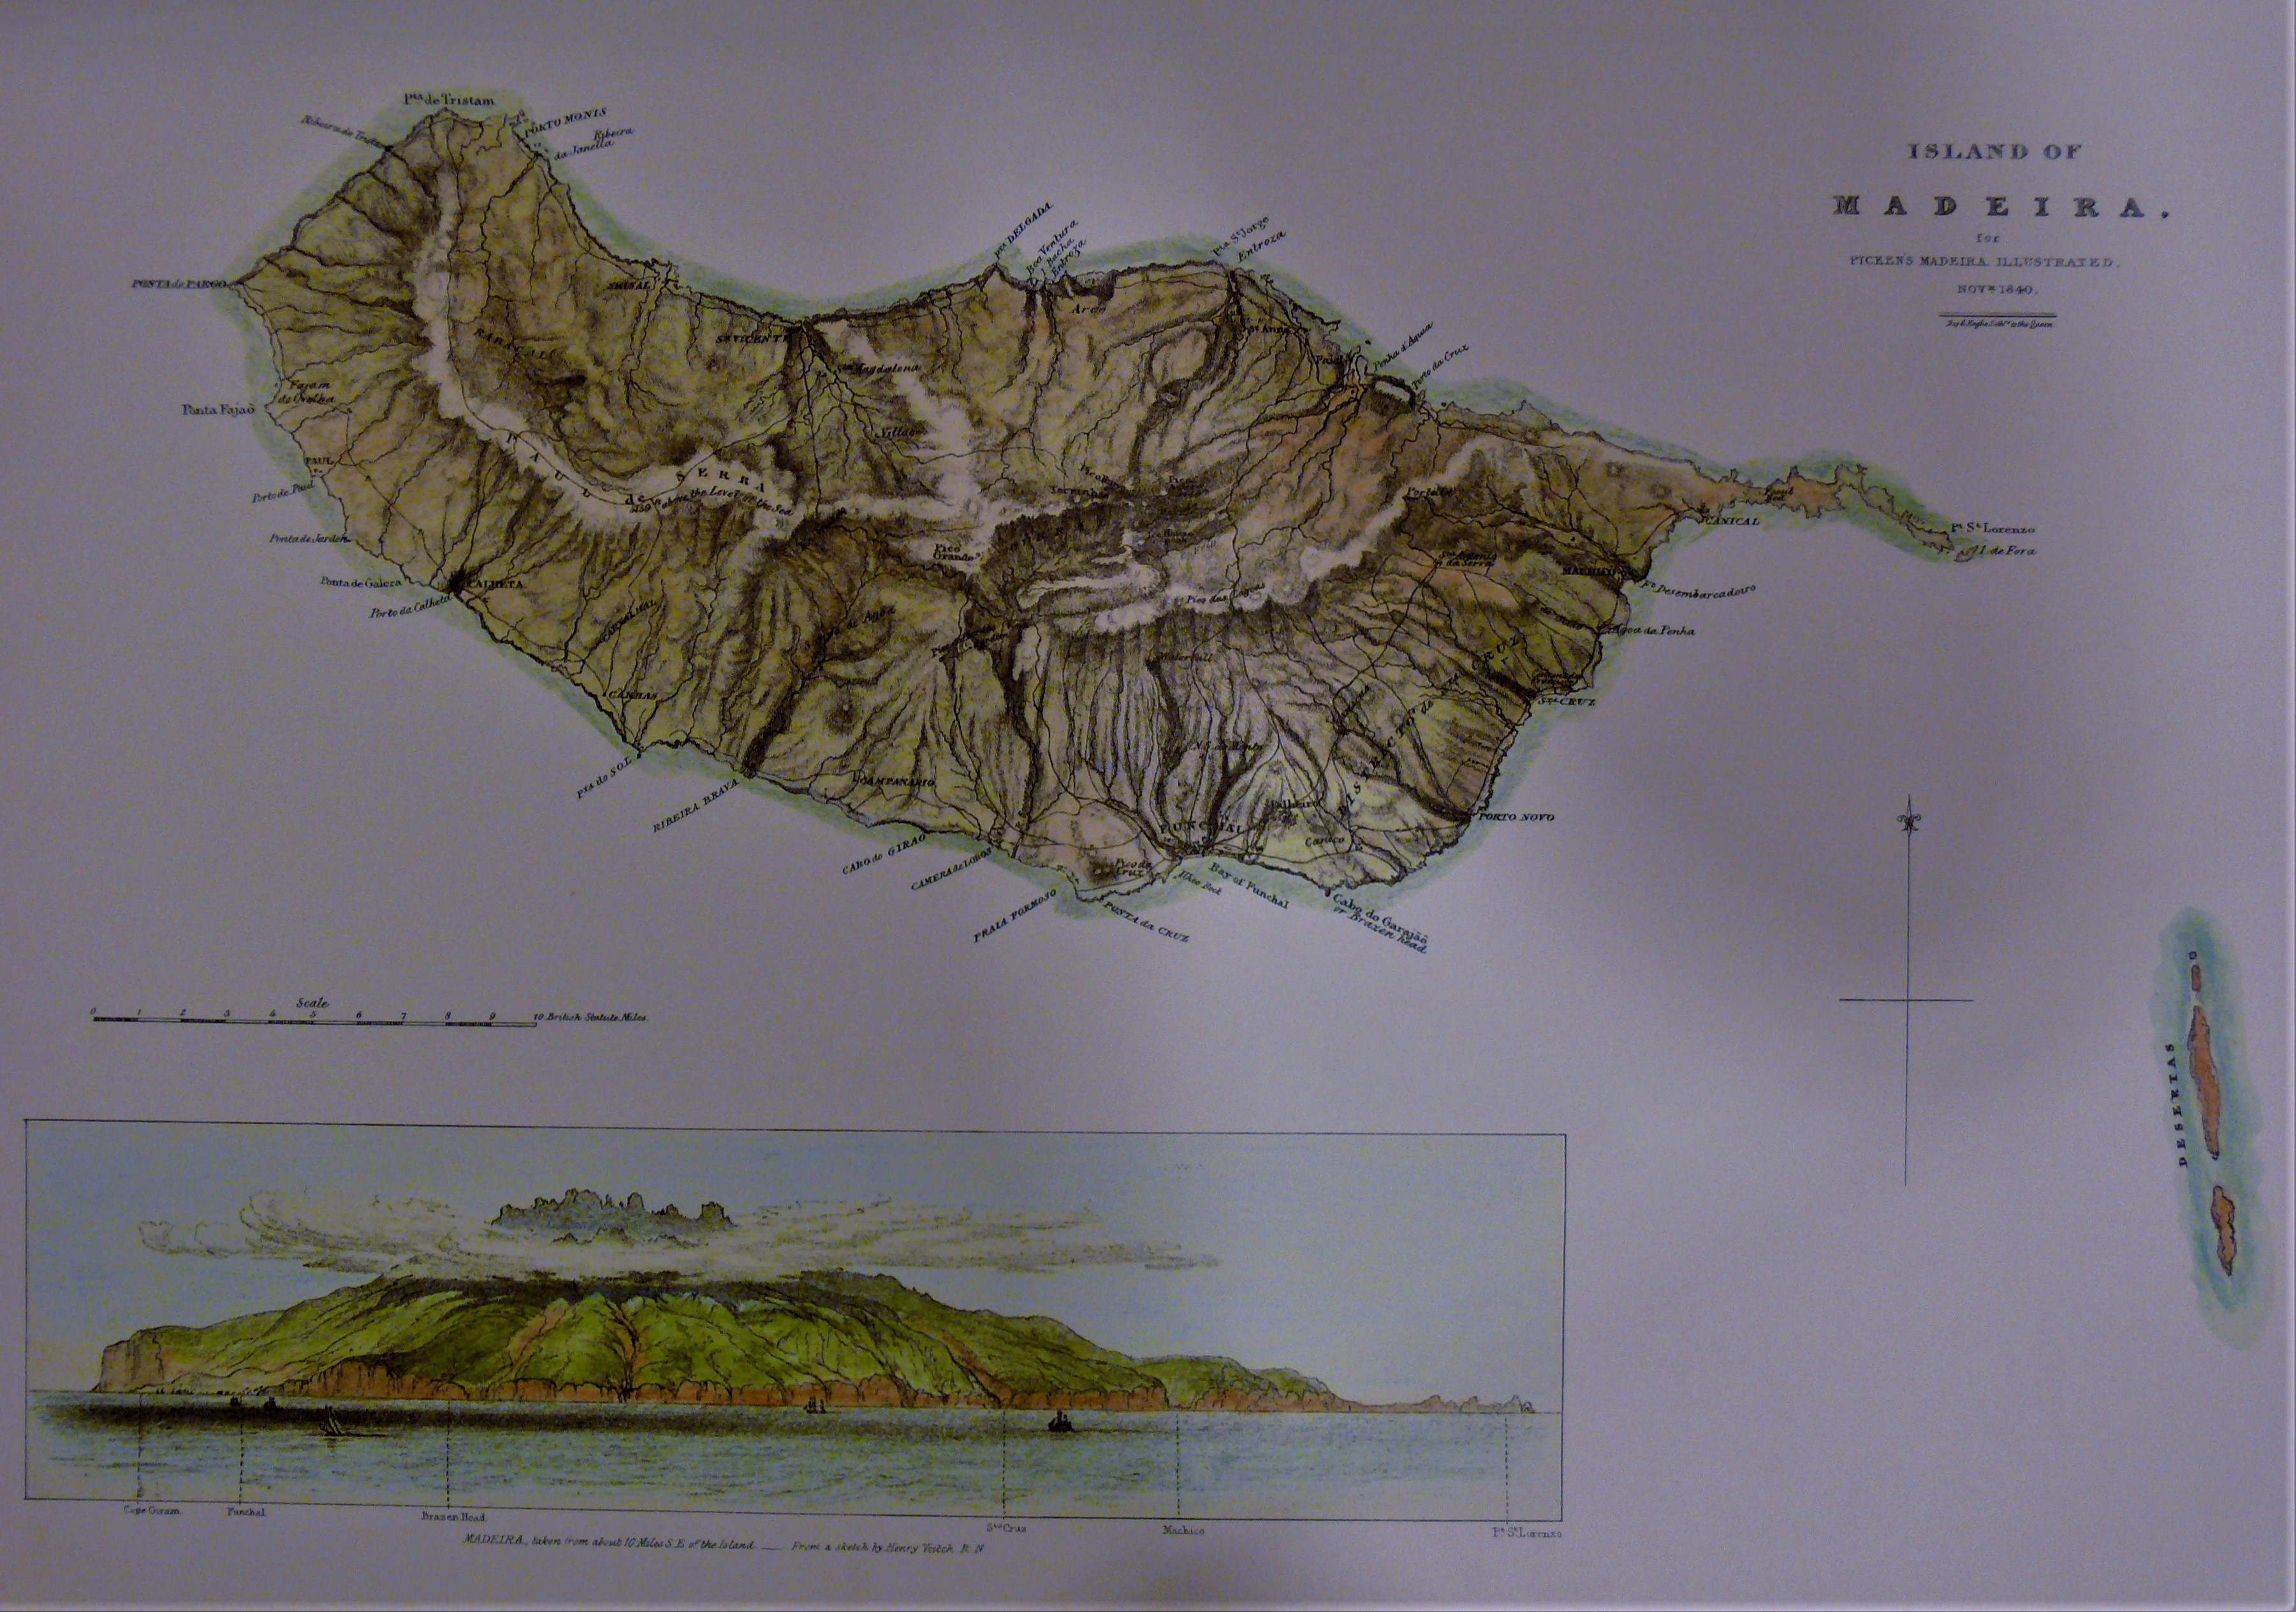 Topographic drawing of Madeira